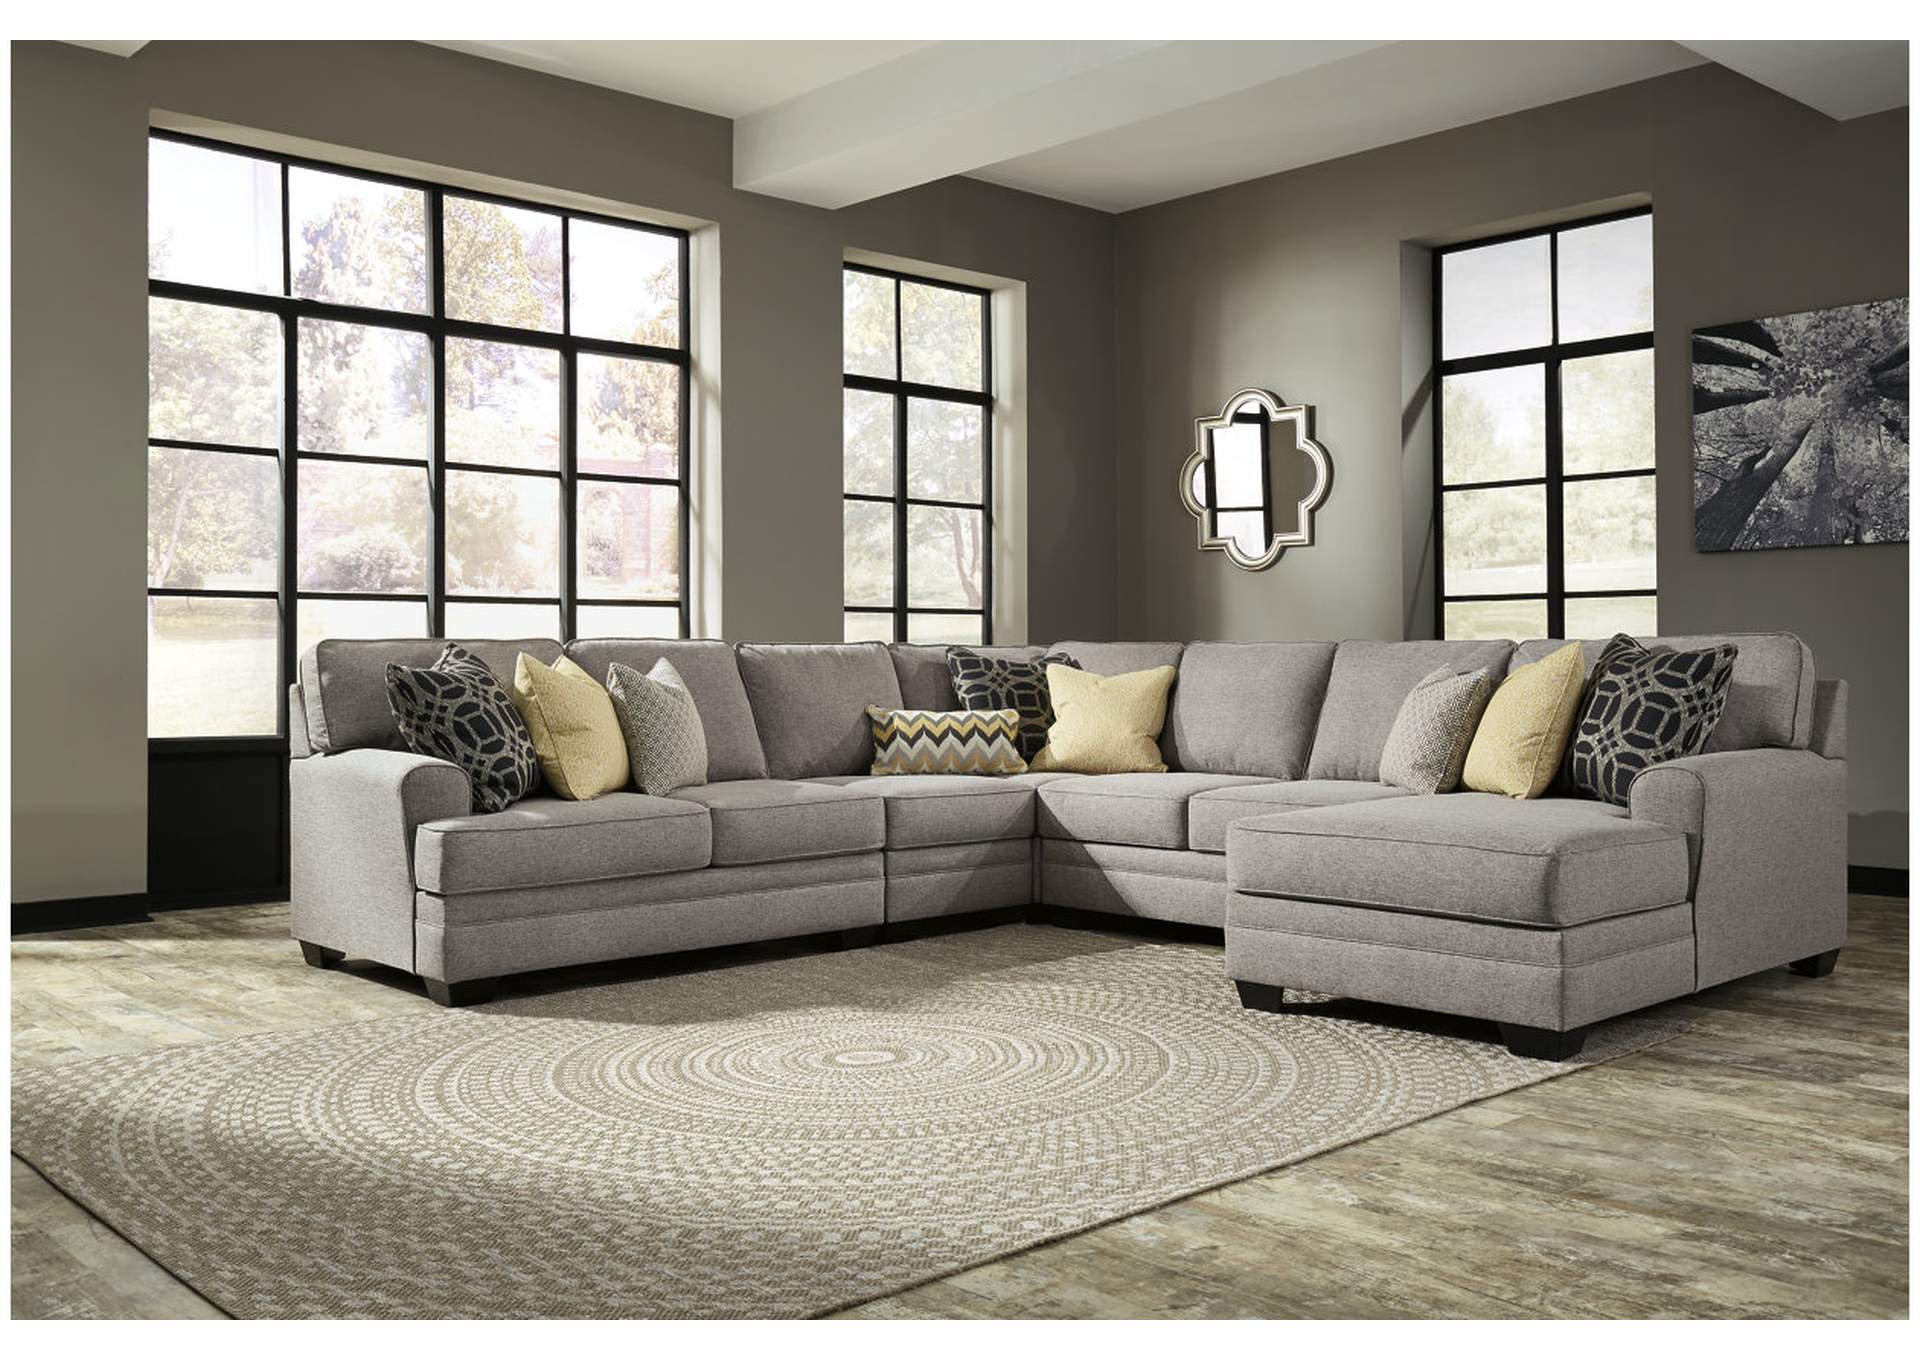 Ivan Smith Cresson Pewter Left Facing Loveseat Corner Chaise Sectional